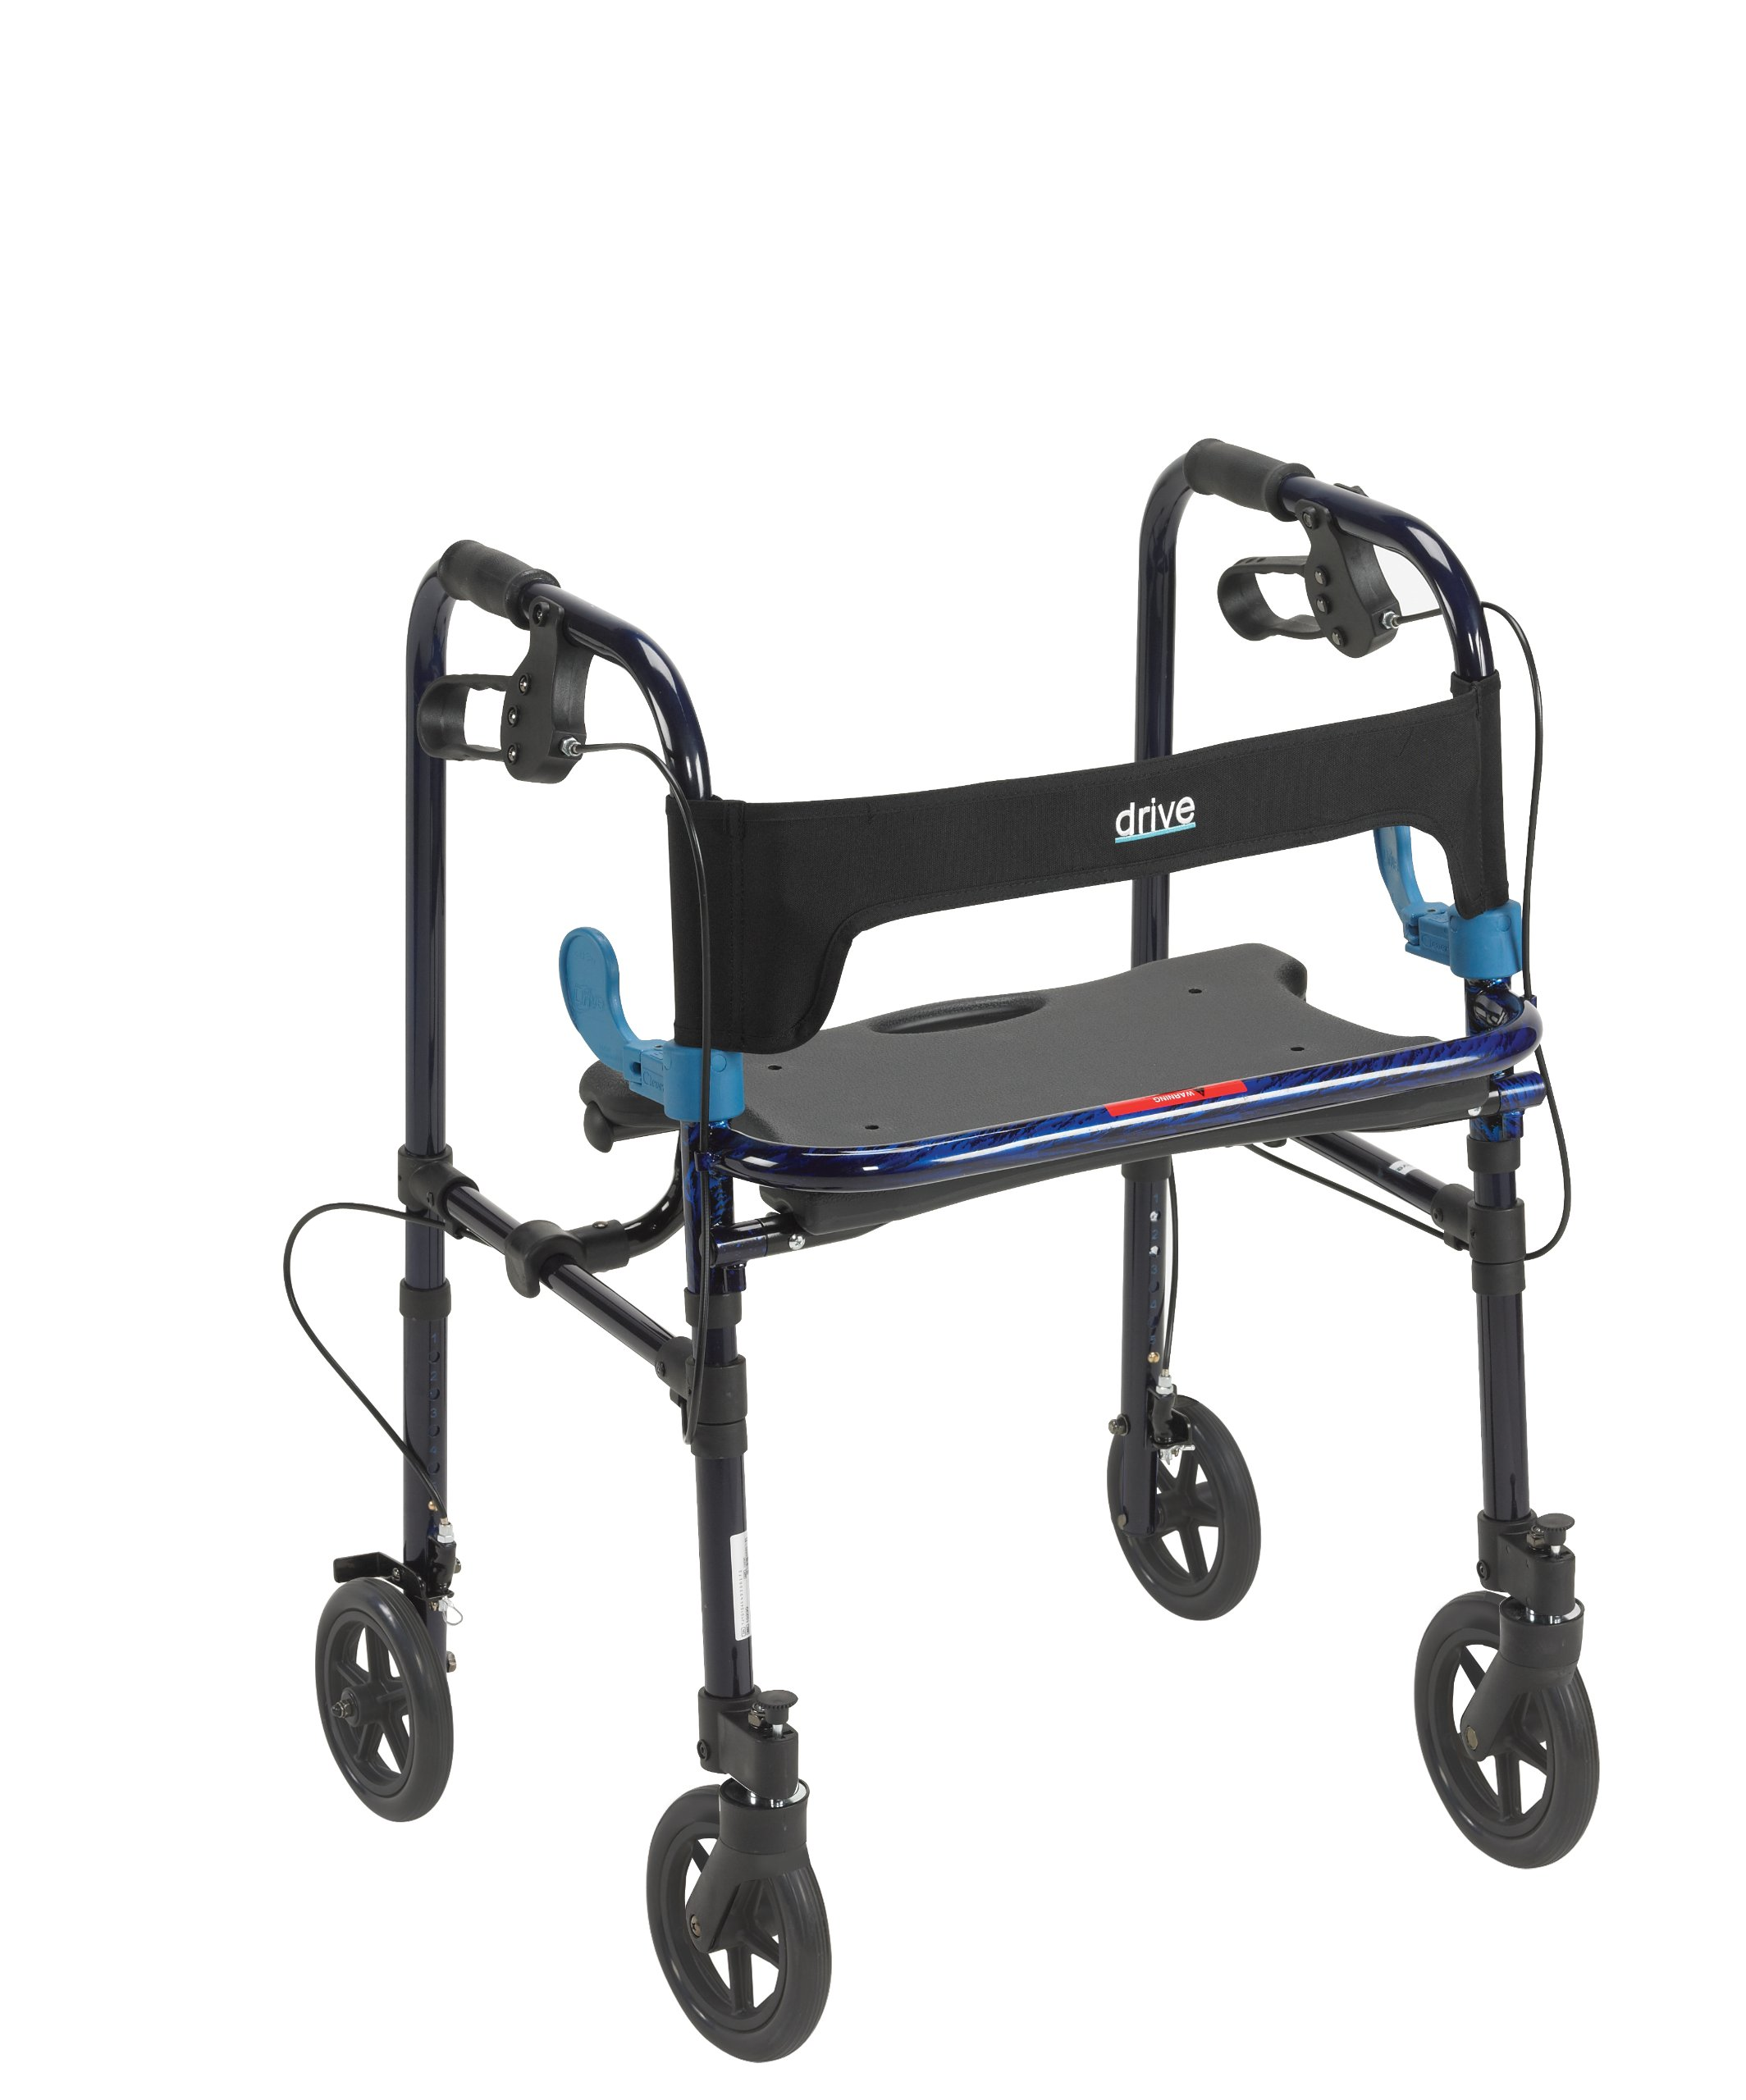 Drive Medical Deluxe Clever Lite Rollator Walker with 8'' Casters, Flame Blue, Adult